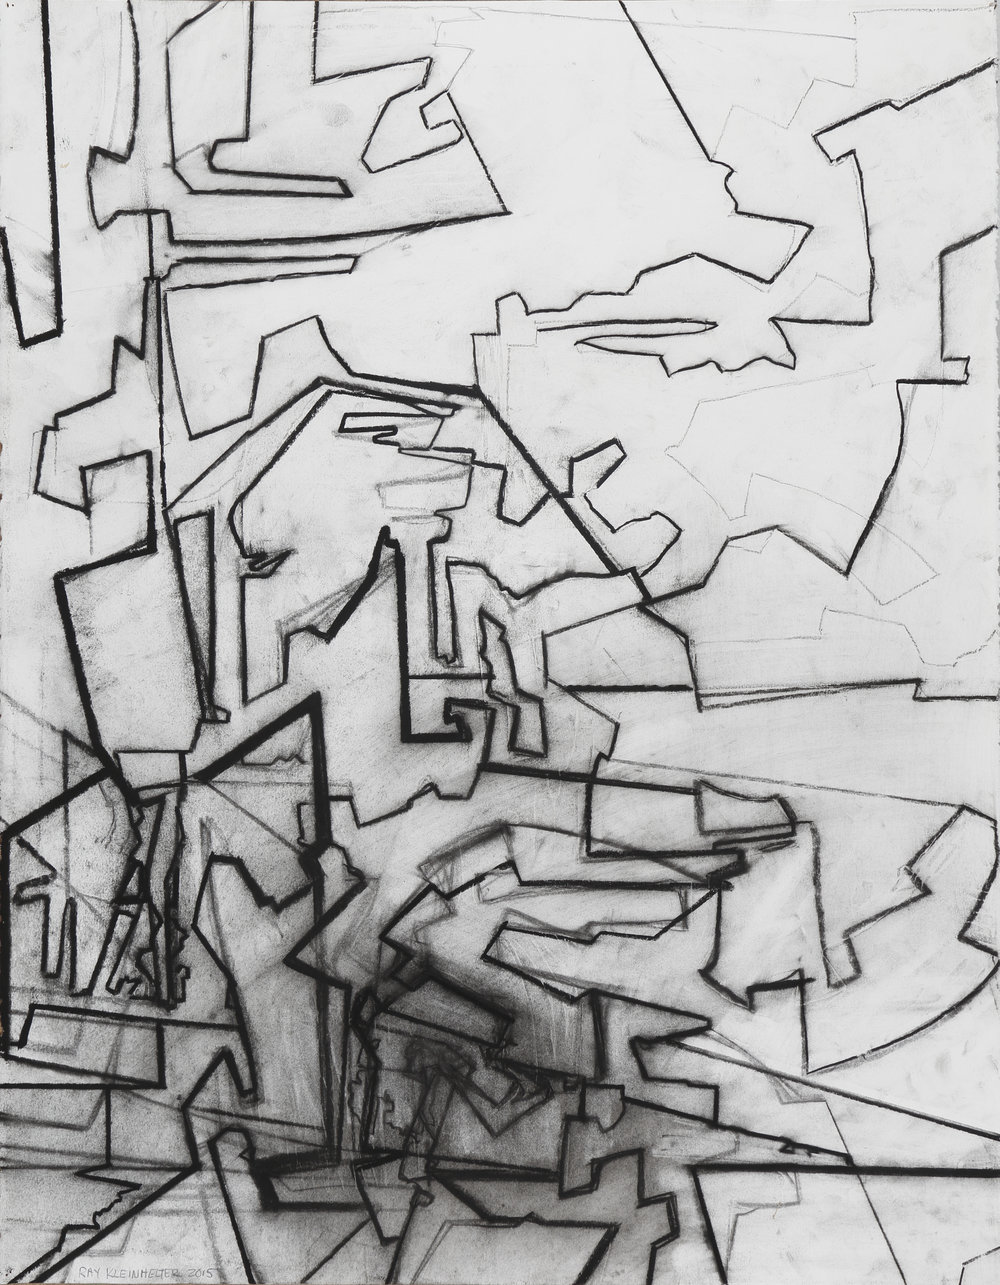 """Landscape Variation #4"" by Ray Kleinhelter, 22.5x30in, charcoal on Stonehenge paper (2016)"